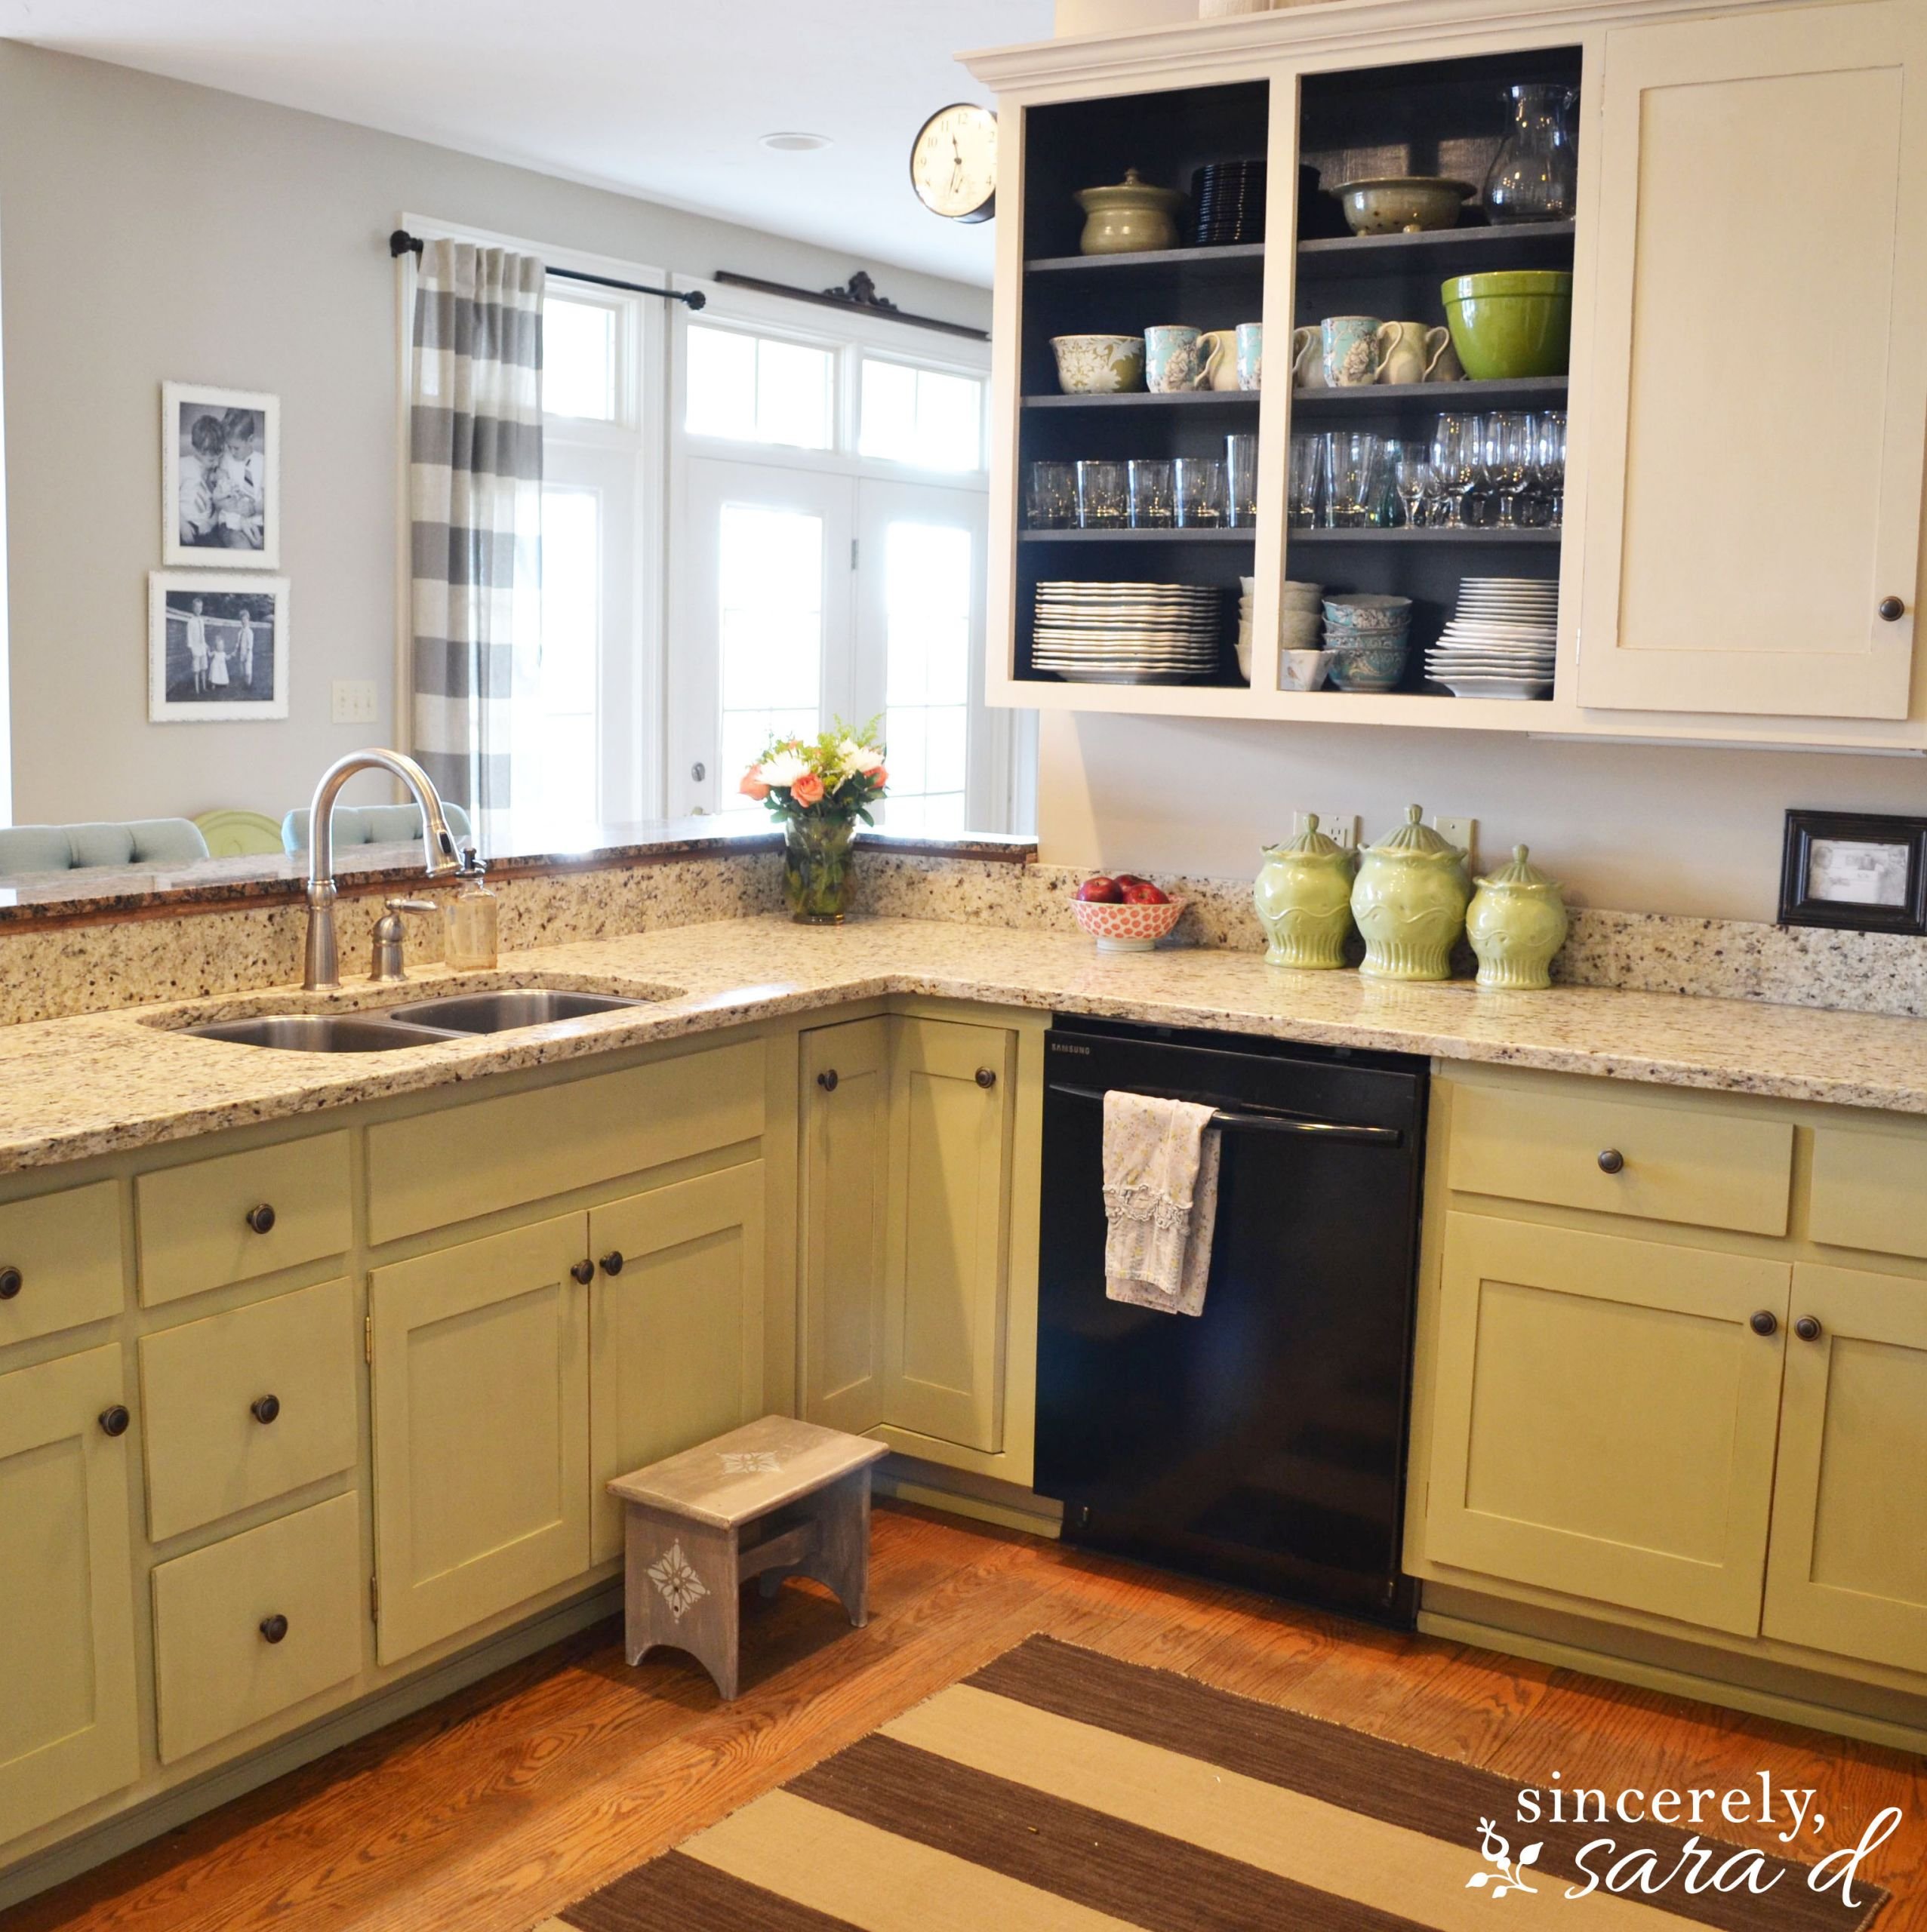 Chalk Paint Kitchen Cabinets Before And After  Painting Kitchen Cabinets with Chalk Paint Update